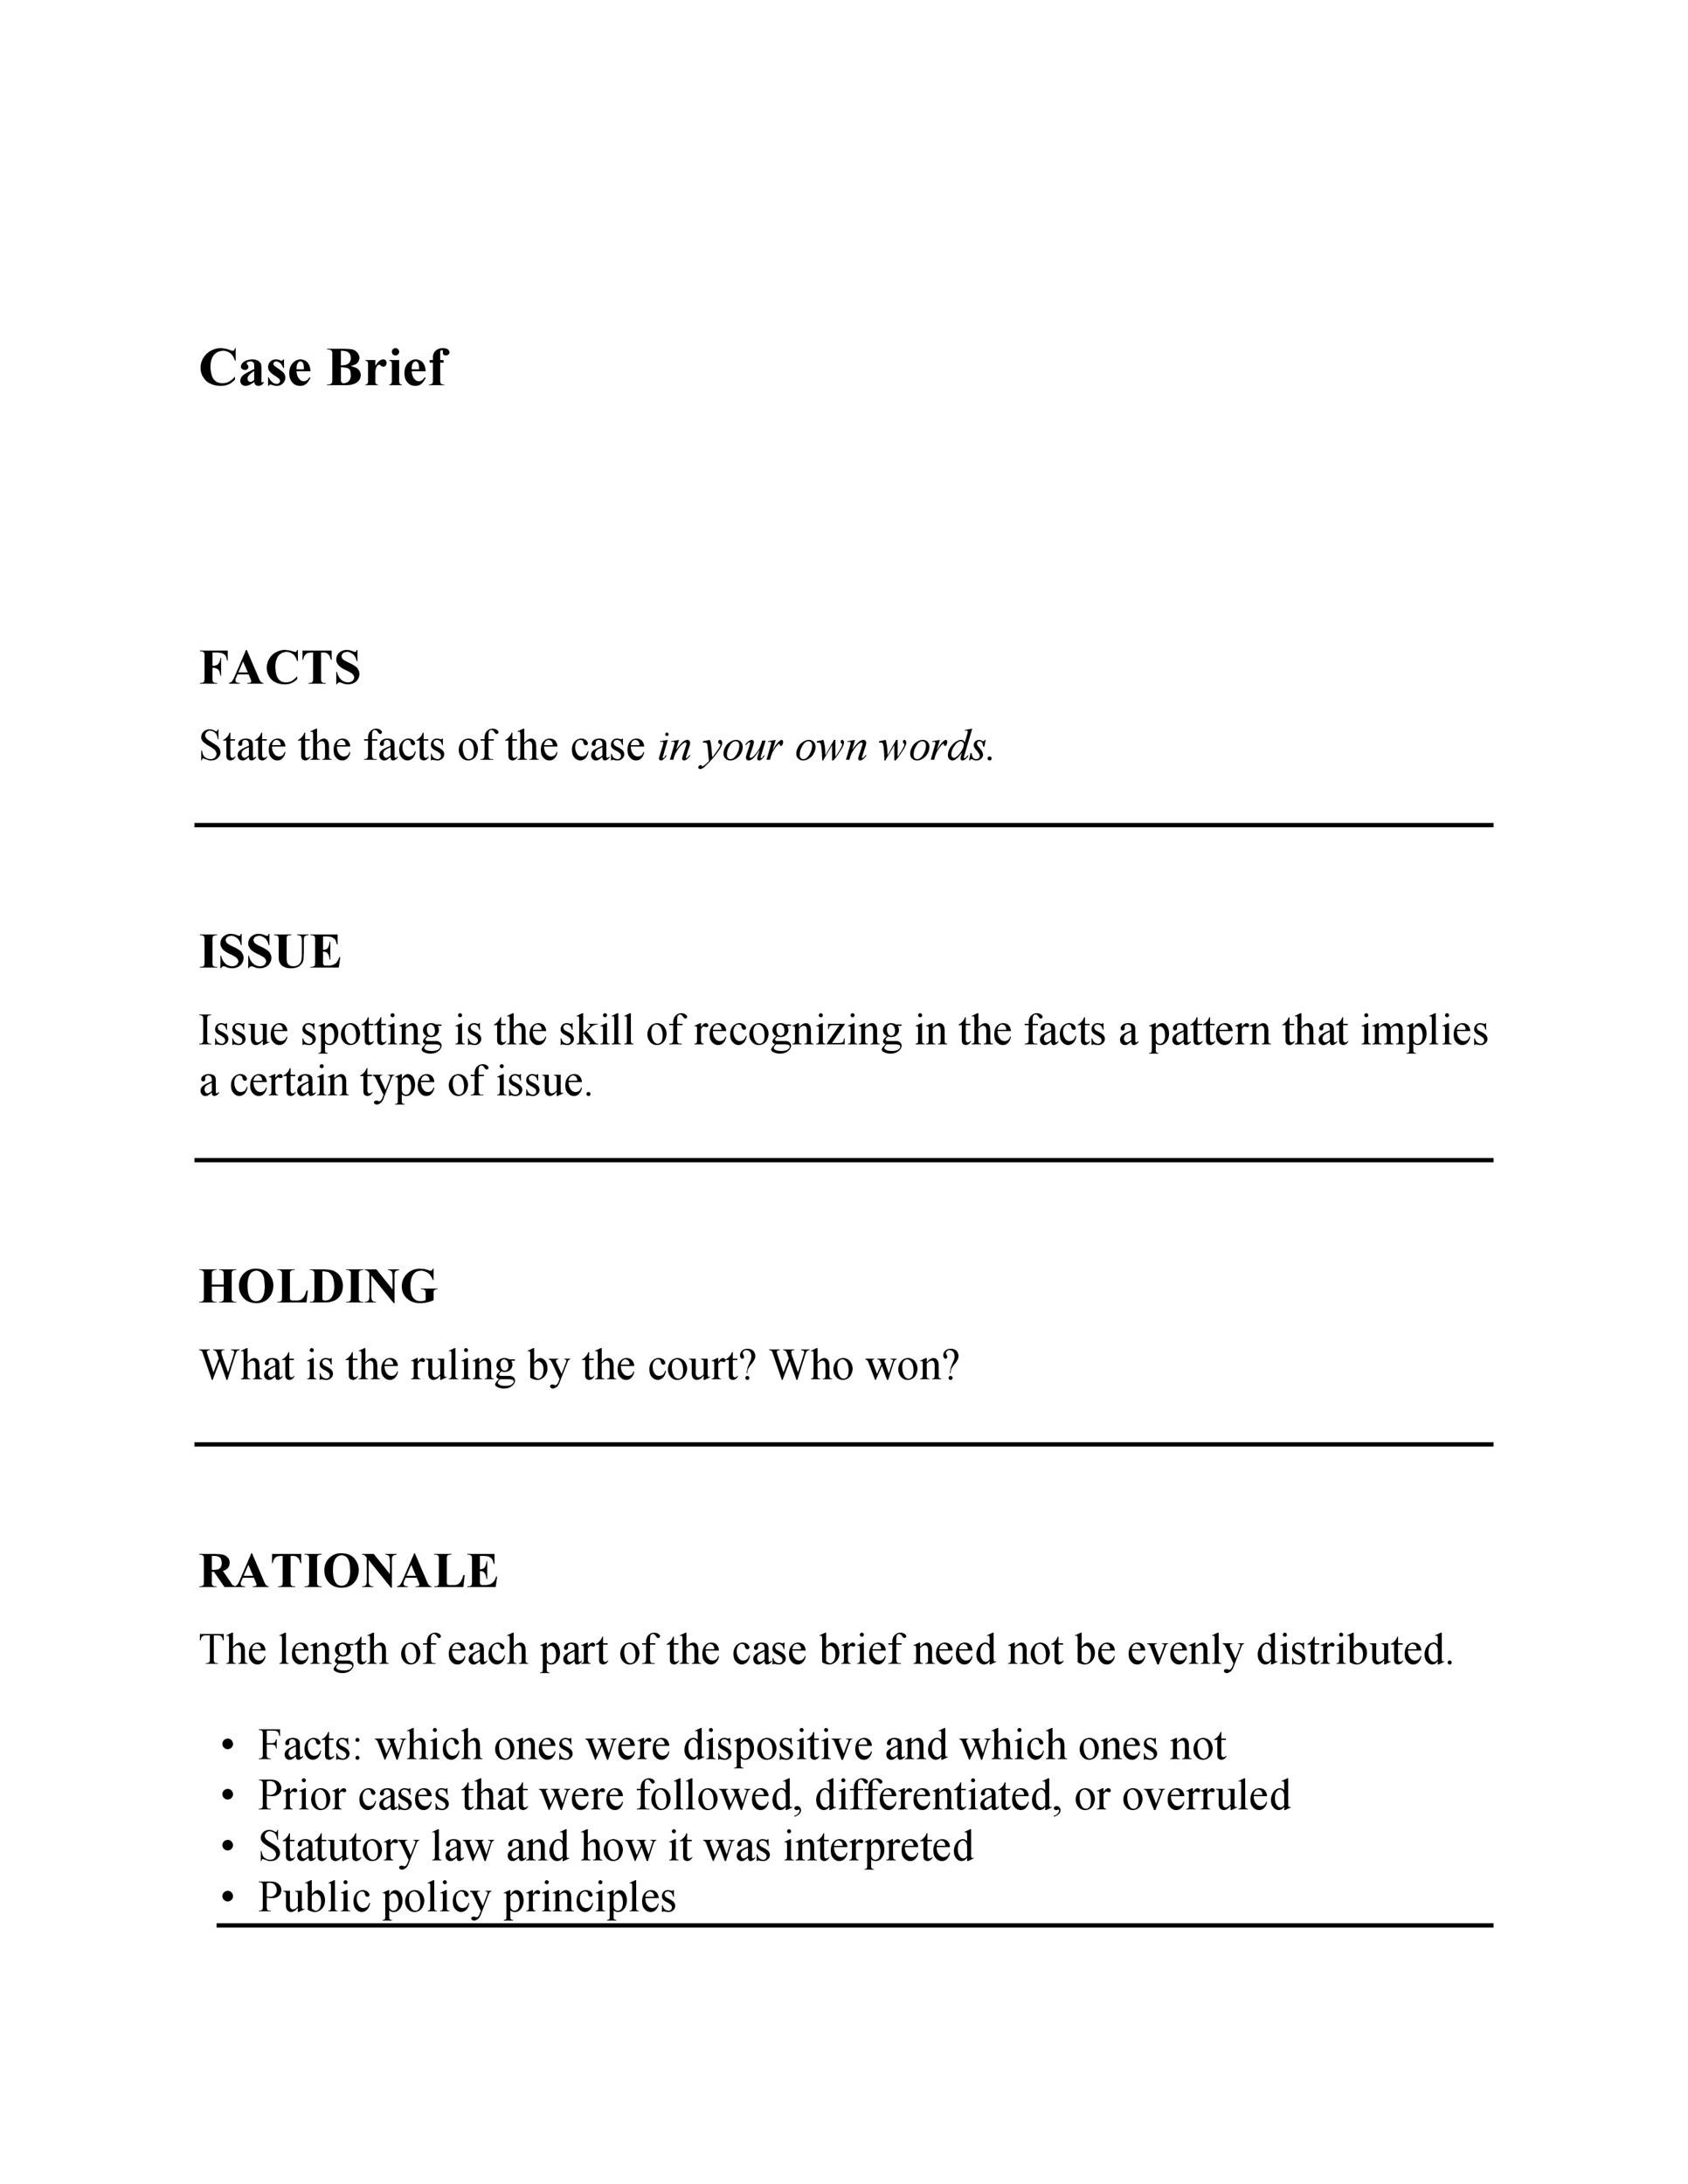 how to read a case brief